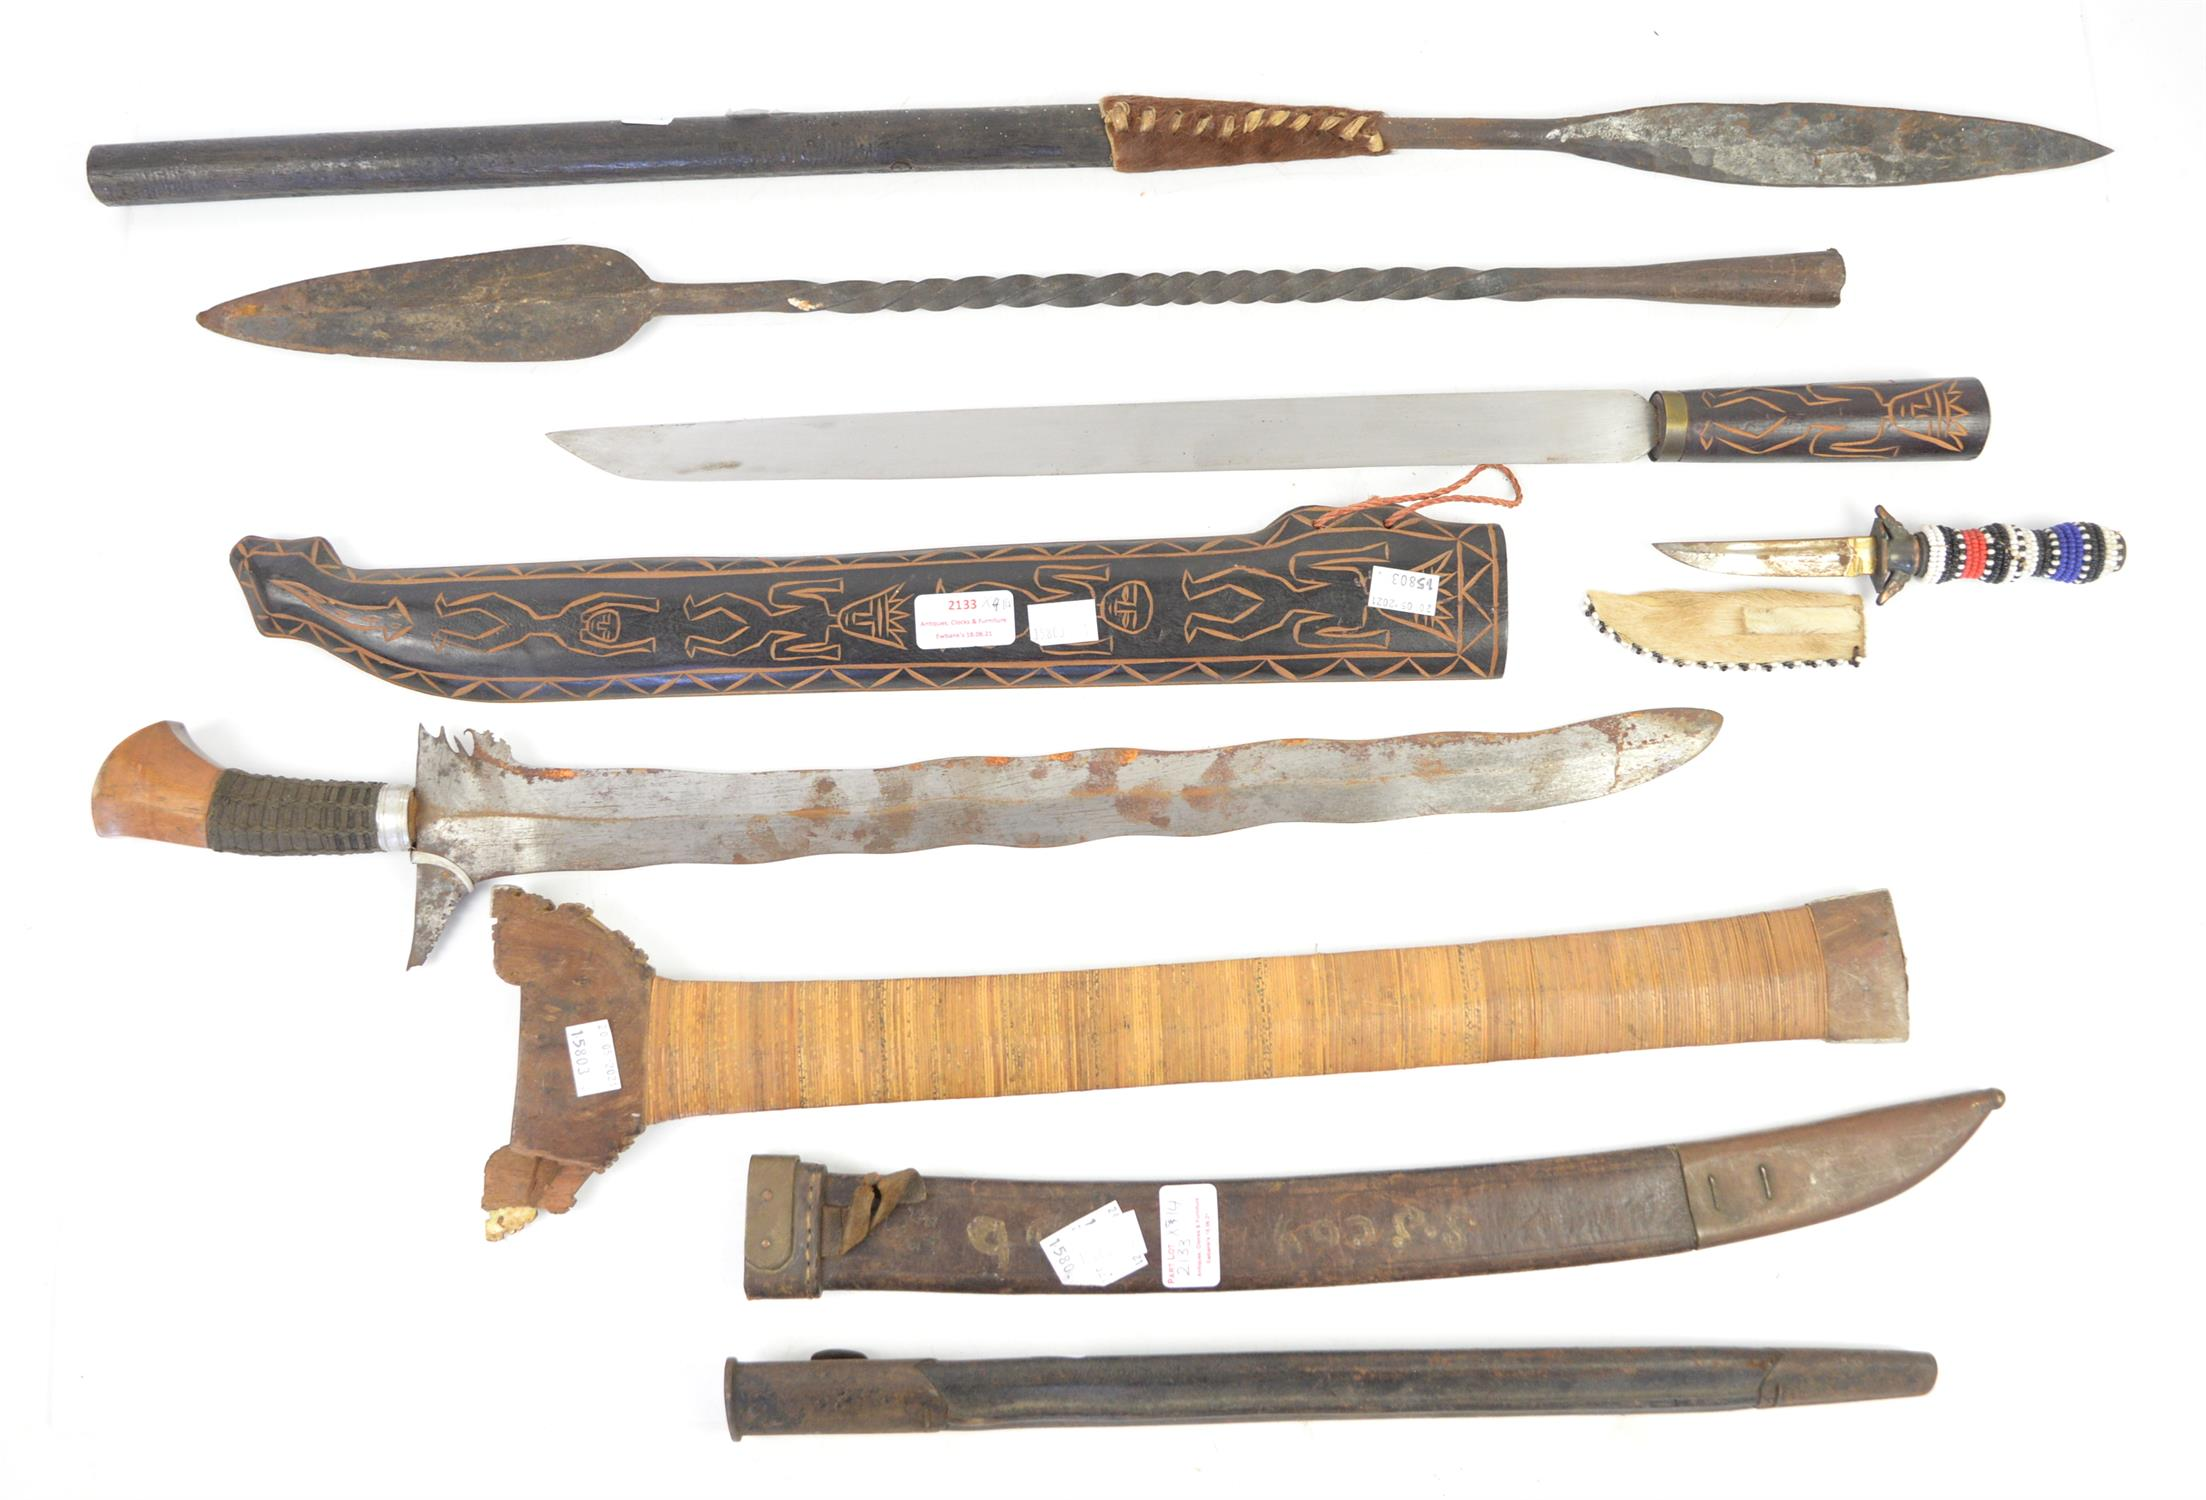 AMENDED DESCRIPTION Seven reproduction shields, various designs, one Indonesian Kris, two spears, - Image 3 of 3